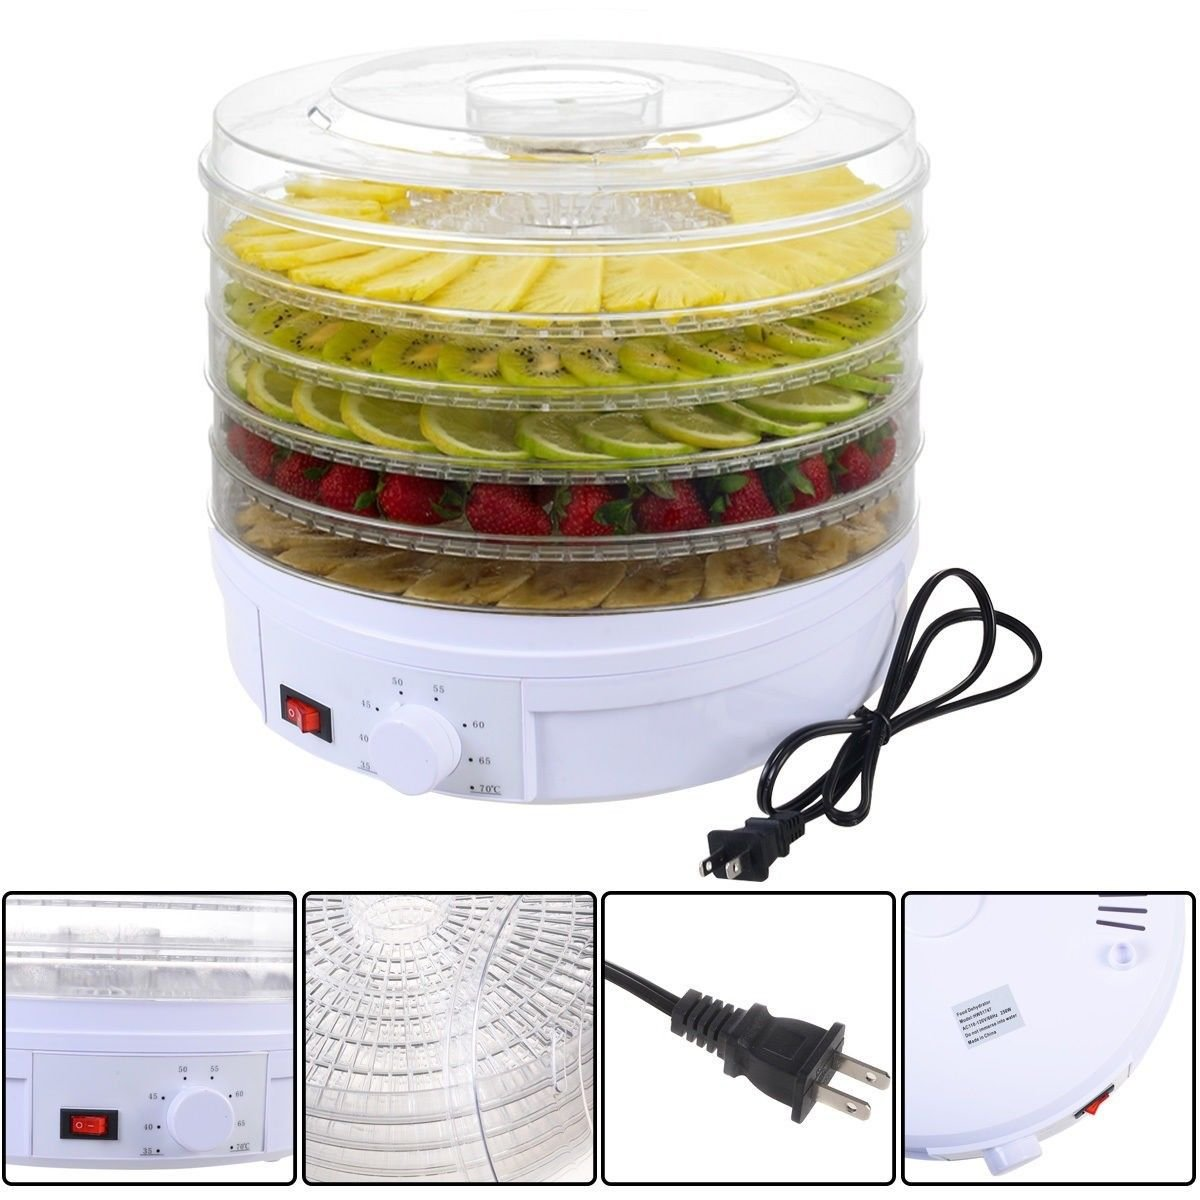 Unbrand/Great supply Electric Food Dehydrator Fruit Vegetable Dryer by Unbrand/Great supply (Image #3)